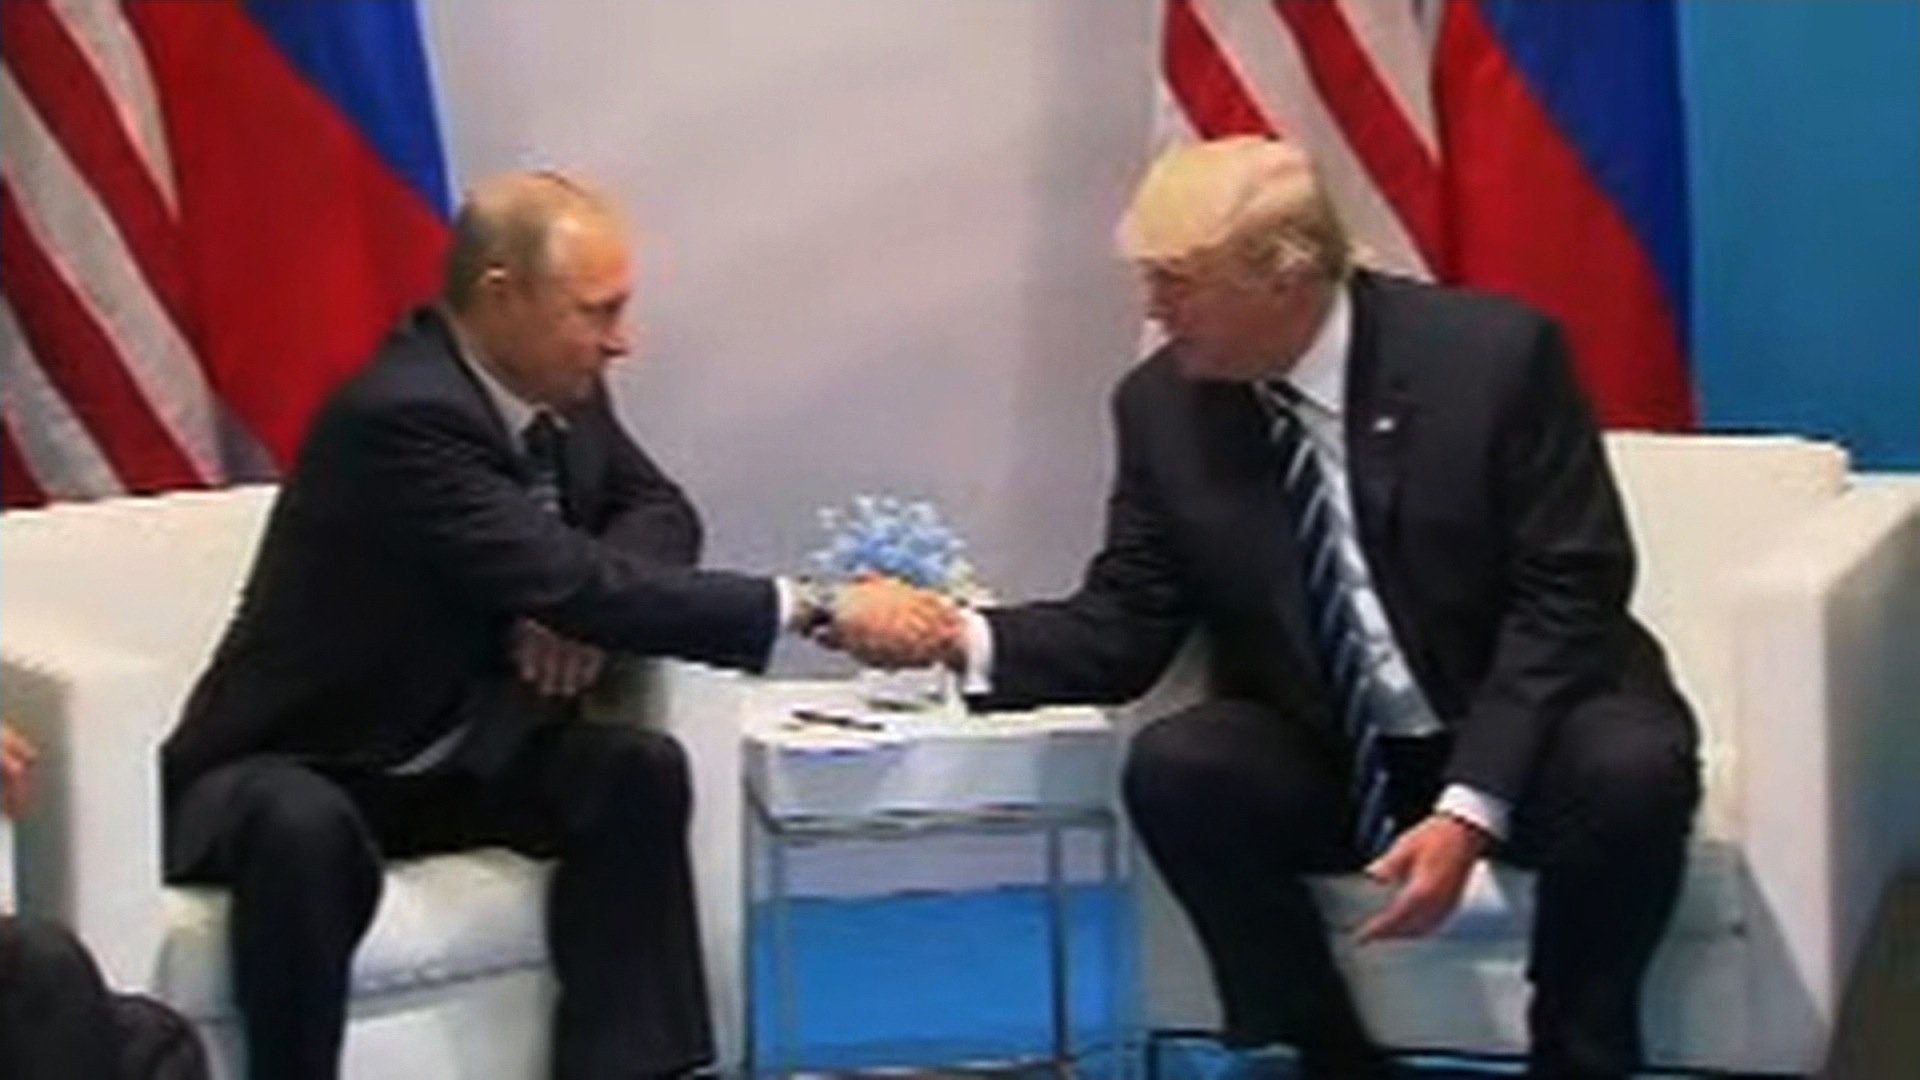 (File Photo) President Donald Trump shakes hands with Russian President Vladimir Putin at the G20 Summit, Friday, July 7, 2017, in Hamburg. courtesy Host TV.